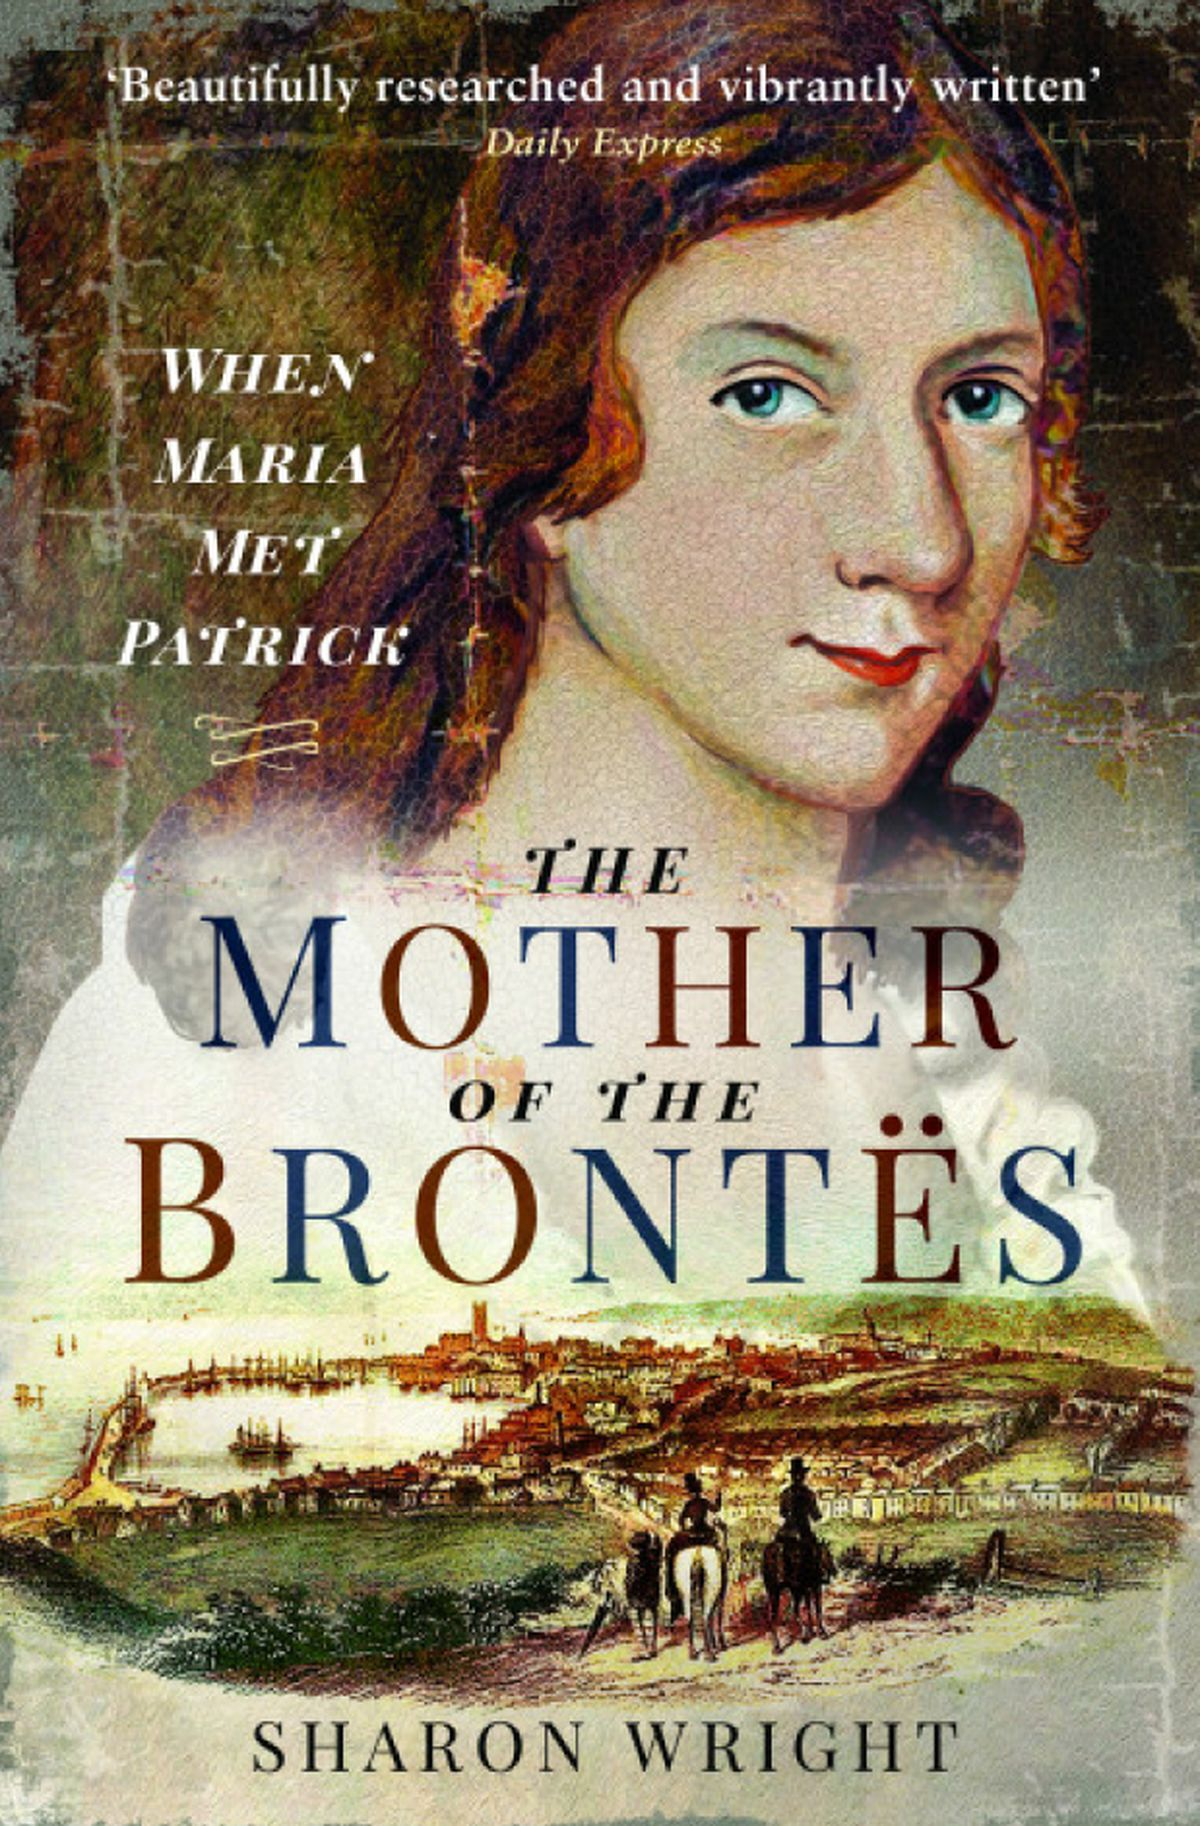 The Mother of the Brontes by Sharon Wright.